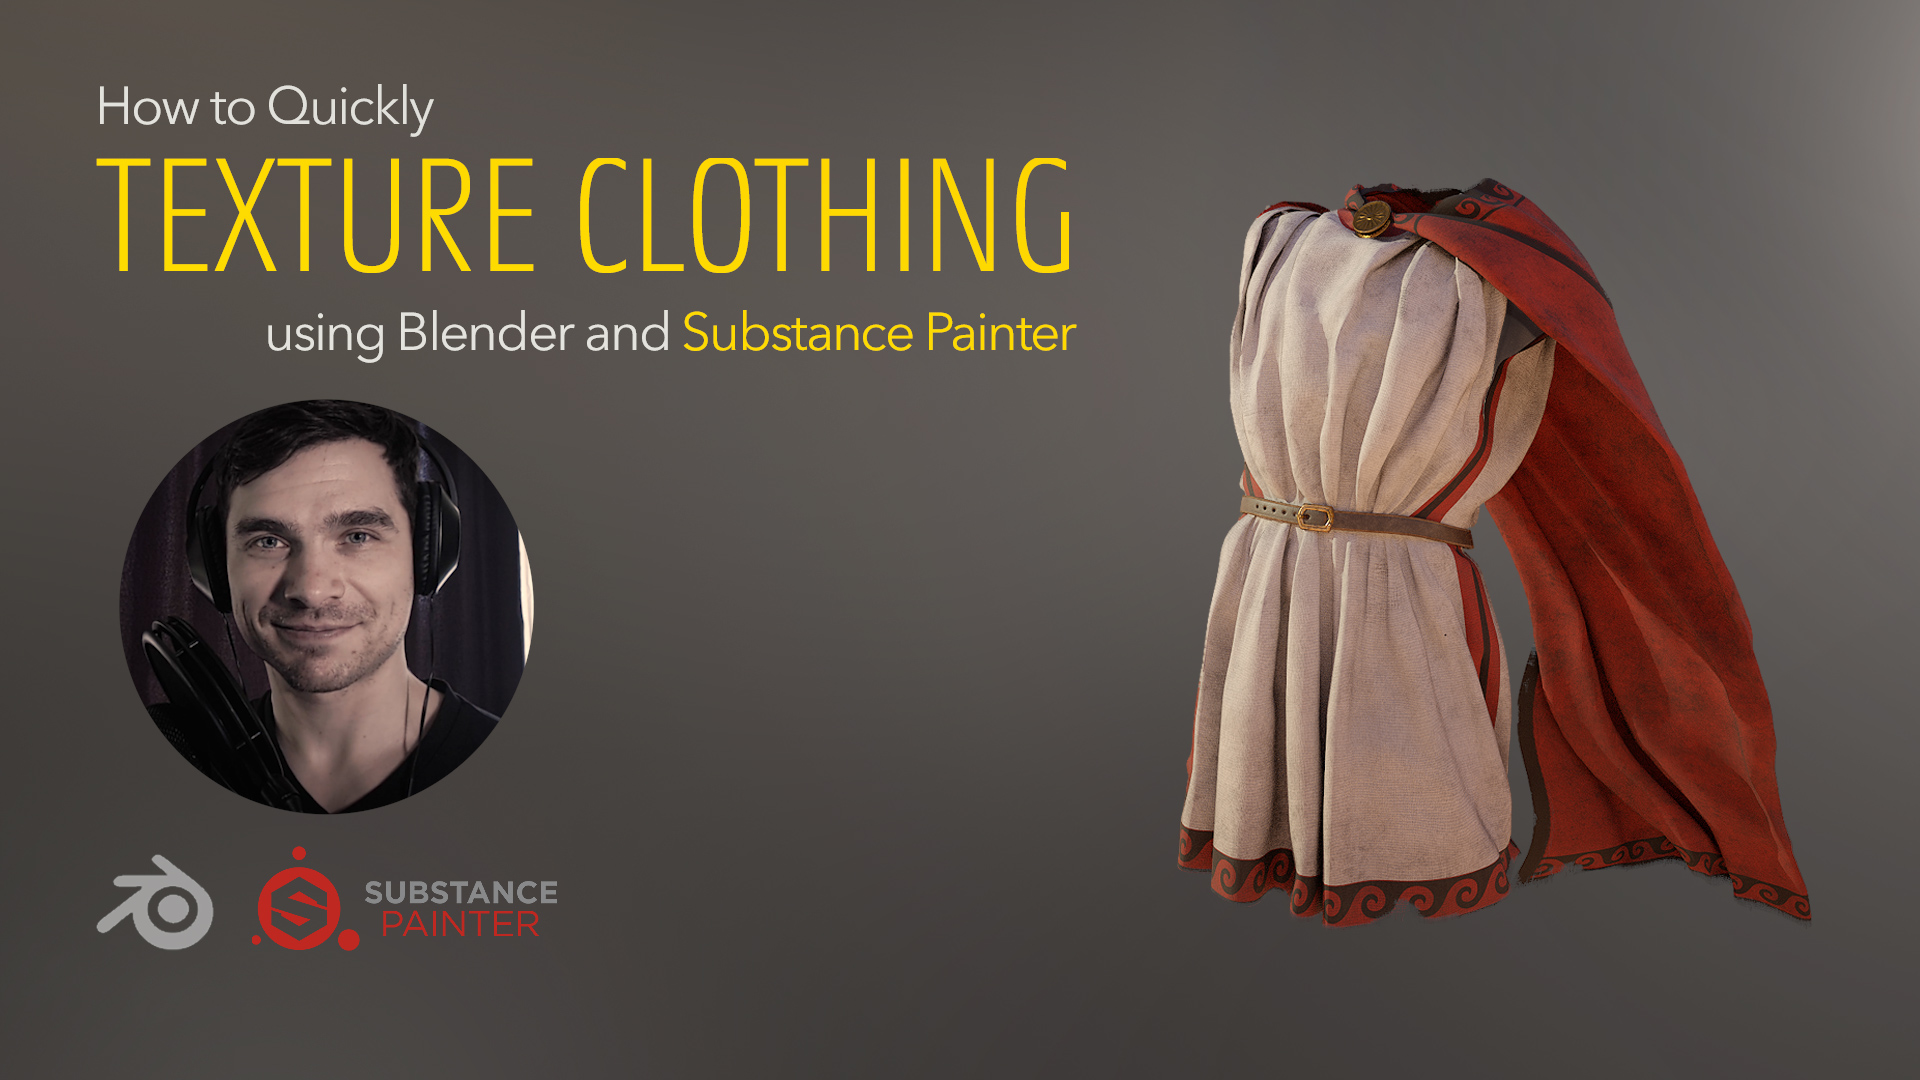 How to Quickly Texture Clothing using Blender and Substance Painter